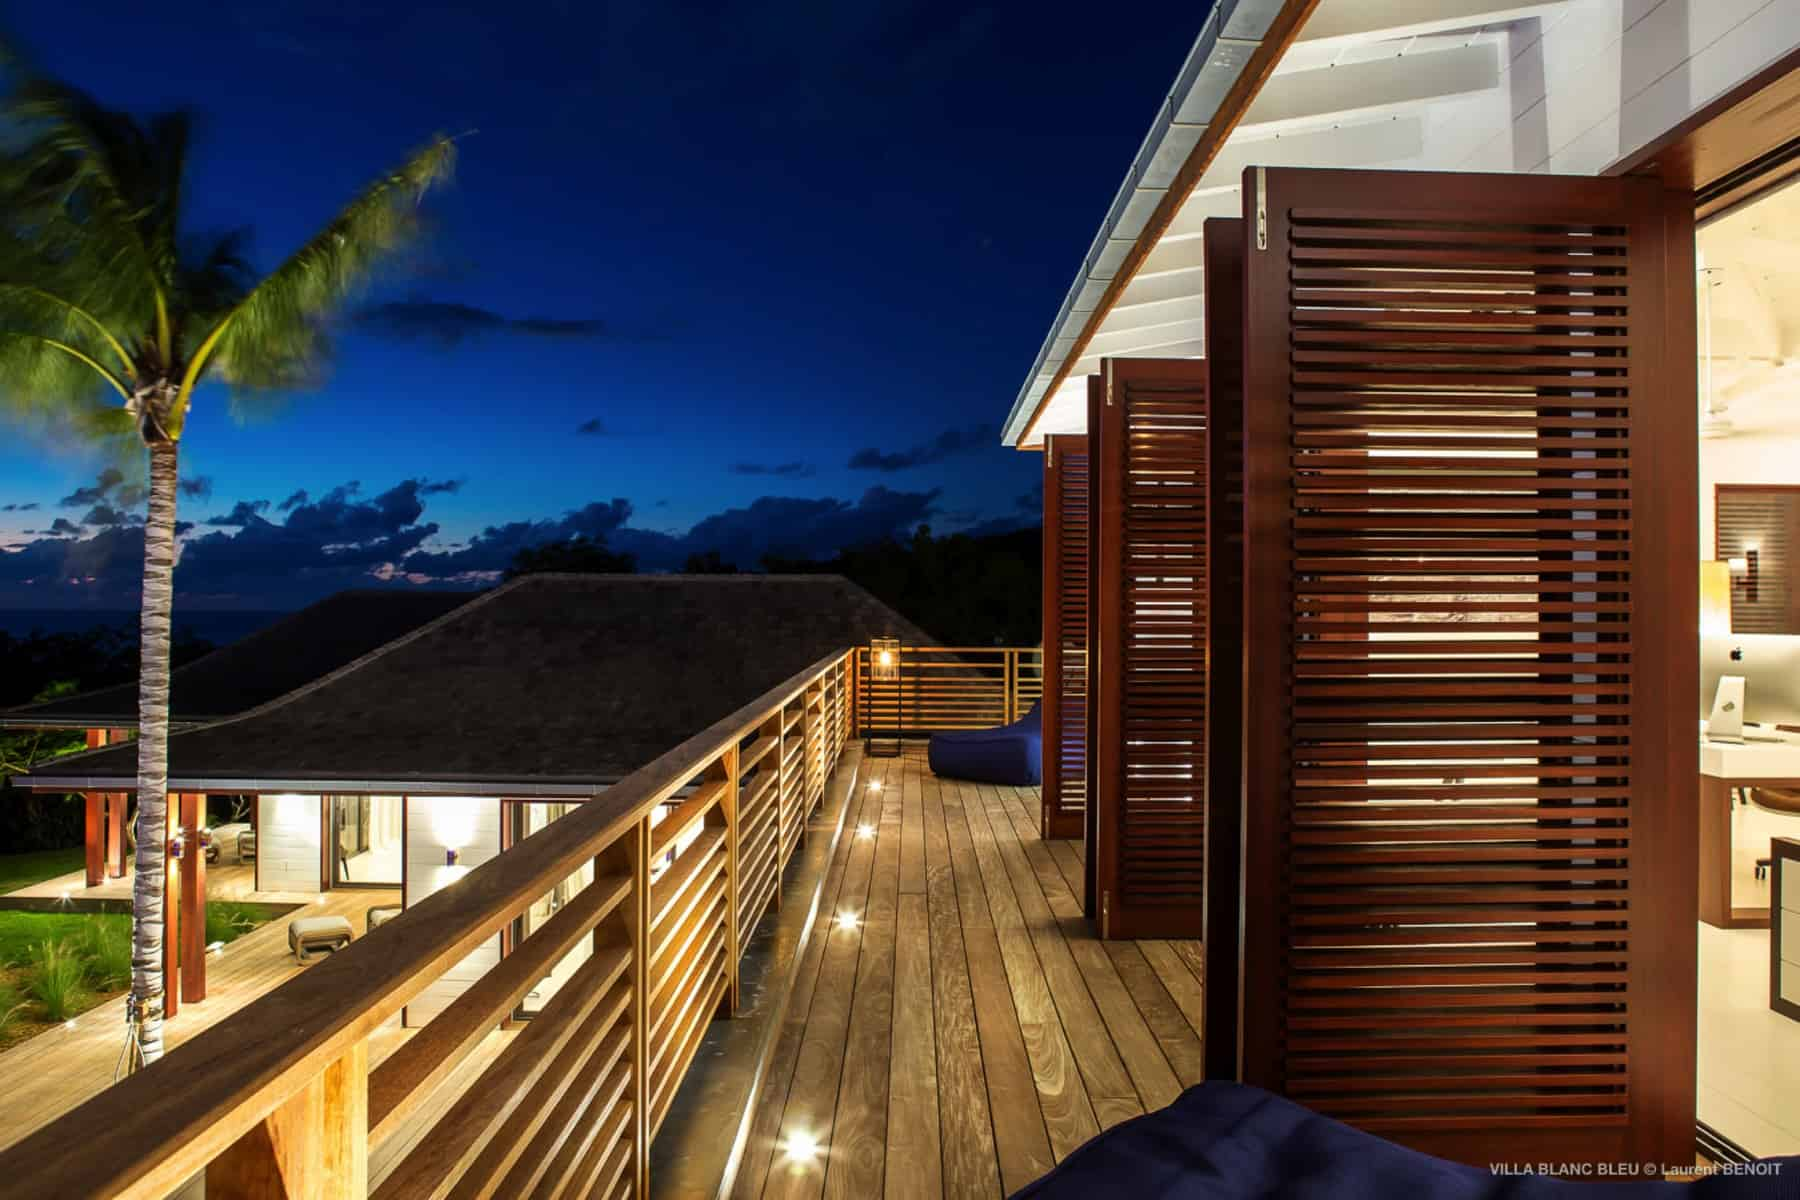 Balcony at night Villa Blanc Bleu St Barths